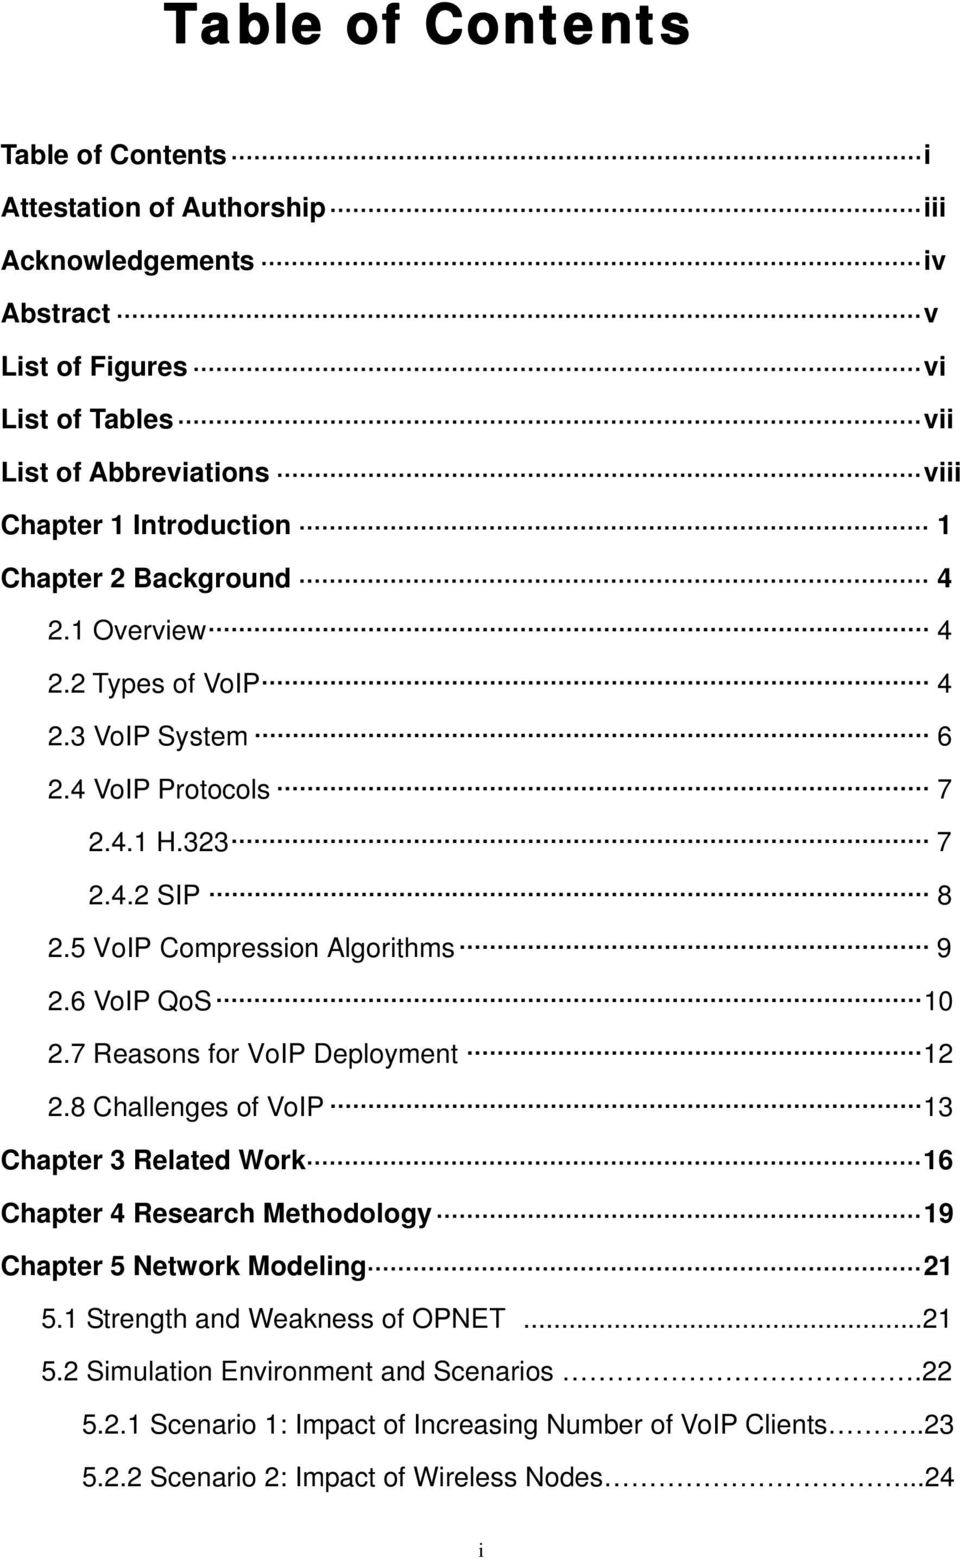 6 VoIP QoS 10 2.7 Reasons for VoIP Deployment 12 2.8 Challenges of VoIP 13 Chapter 3 Related Work 16 Chapter 4 Research Methodology 19 Chapter 5 Network Modeling 21 5.